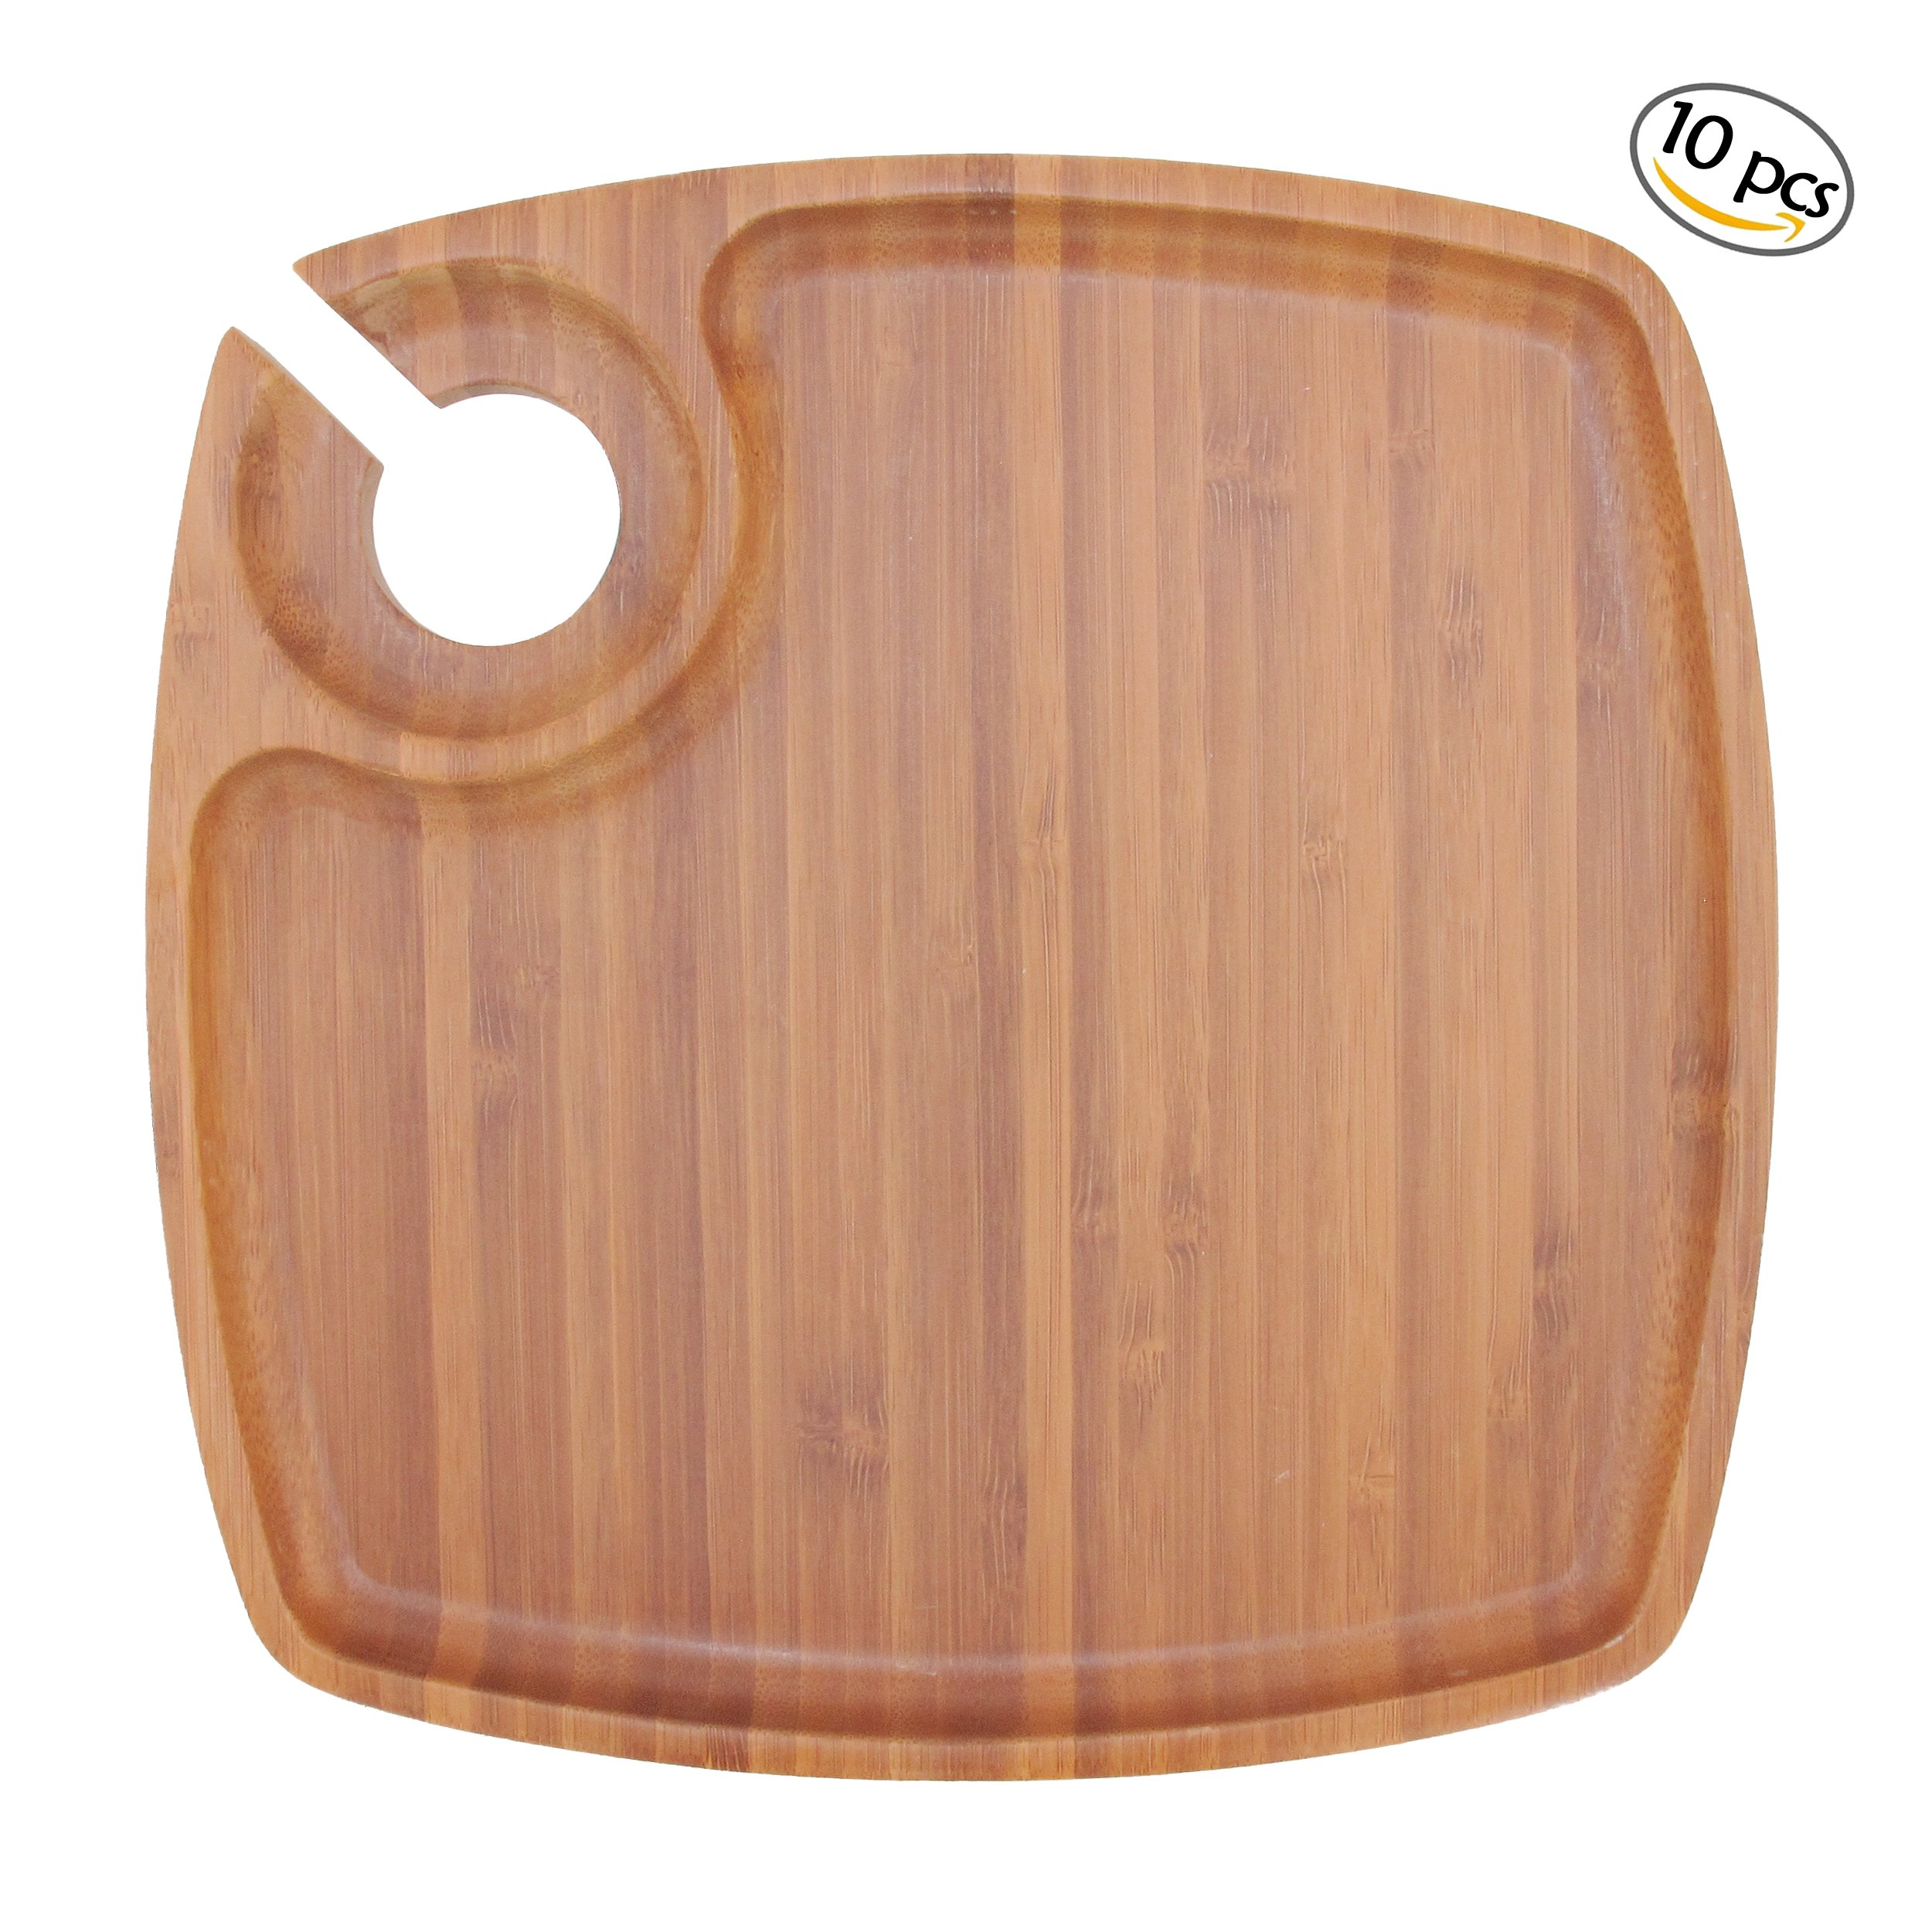 BambooMN 10'' x 10'' Bamboo Ecoware Reusable Dinnerware Cup/ Wine Holder Square Plates for Catered Events, Holidays, or Home Use Supplies, 10 Pcs